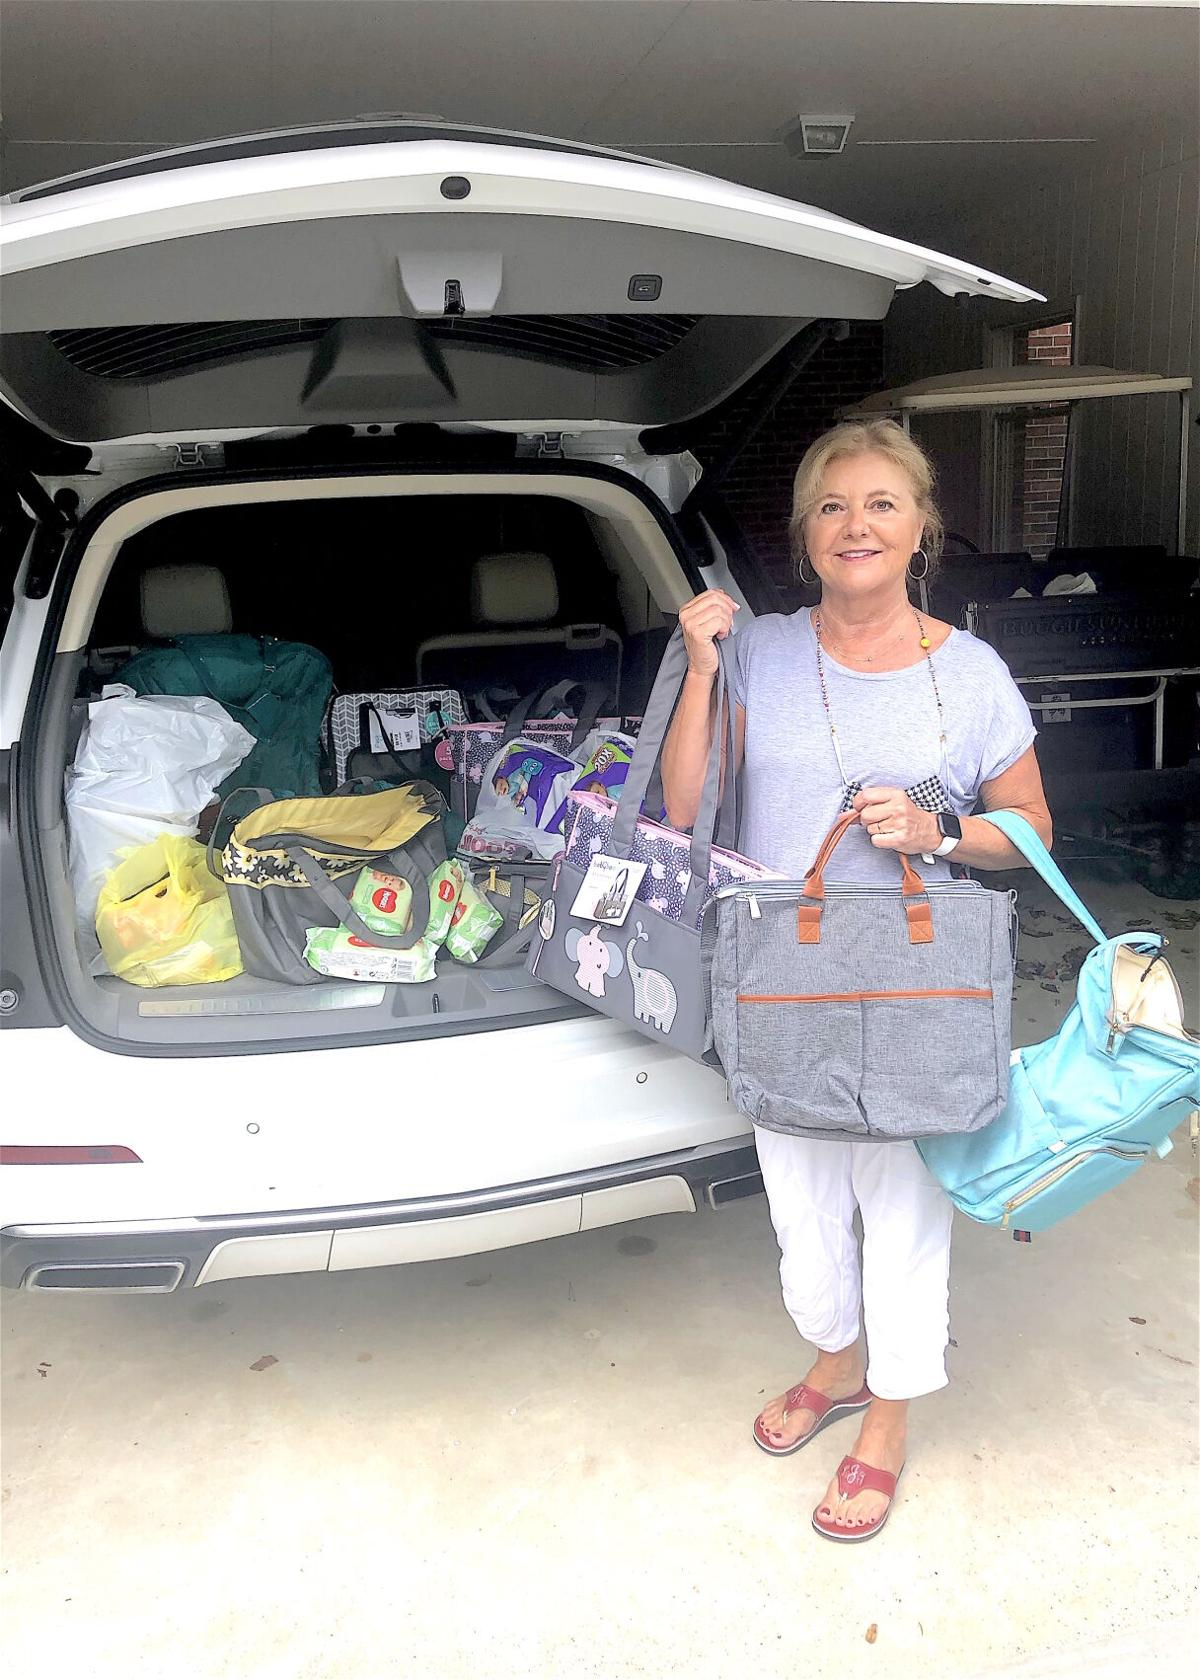 Local DAR chapter donates nearly 500 items to local foster children, masks to healthcare workers and attends state conference